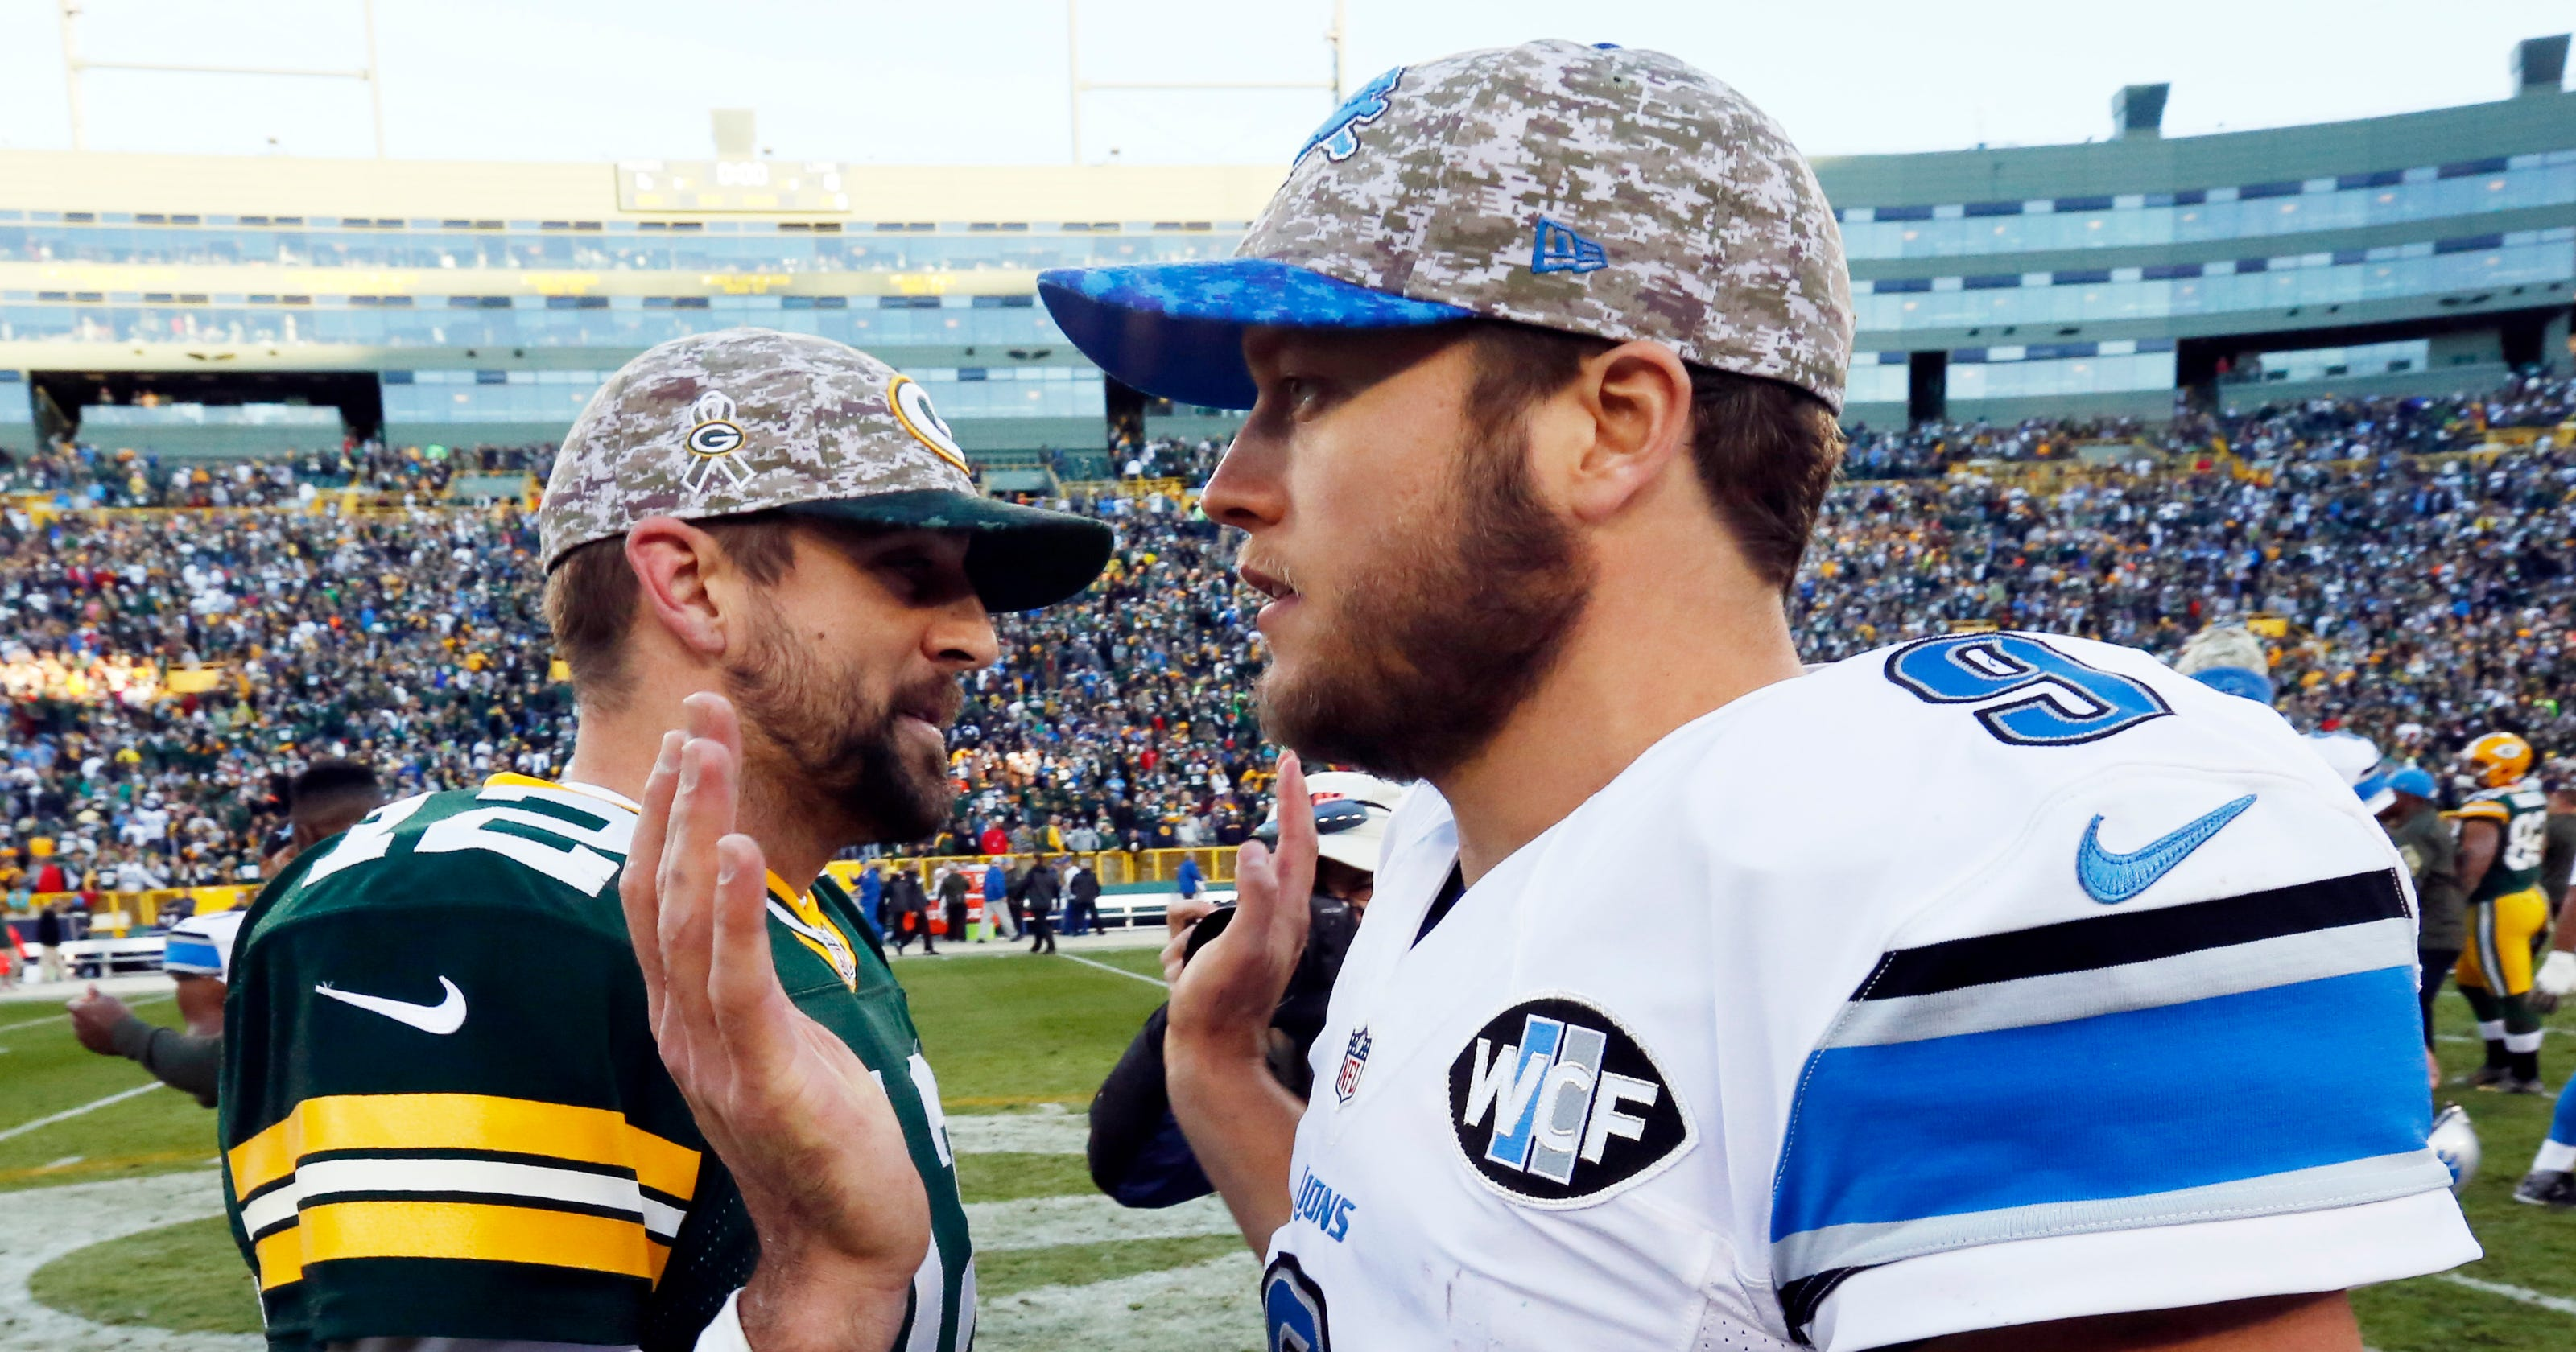 004a7446e Detroit Lions vs. Green Bay Packers game will decide the NFC North